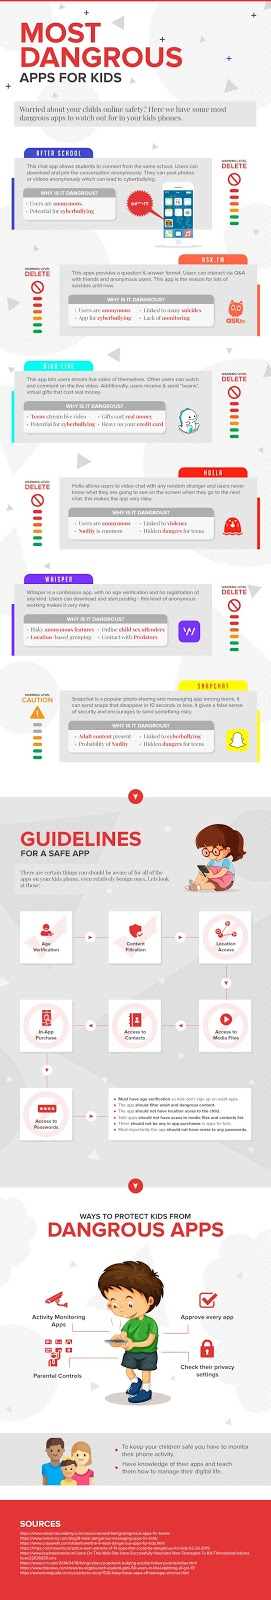 kids online security infographic